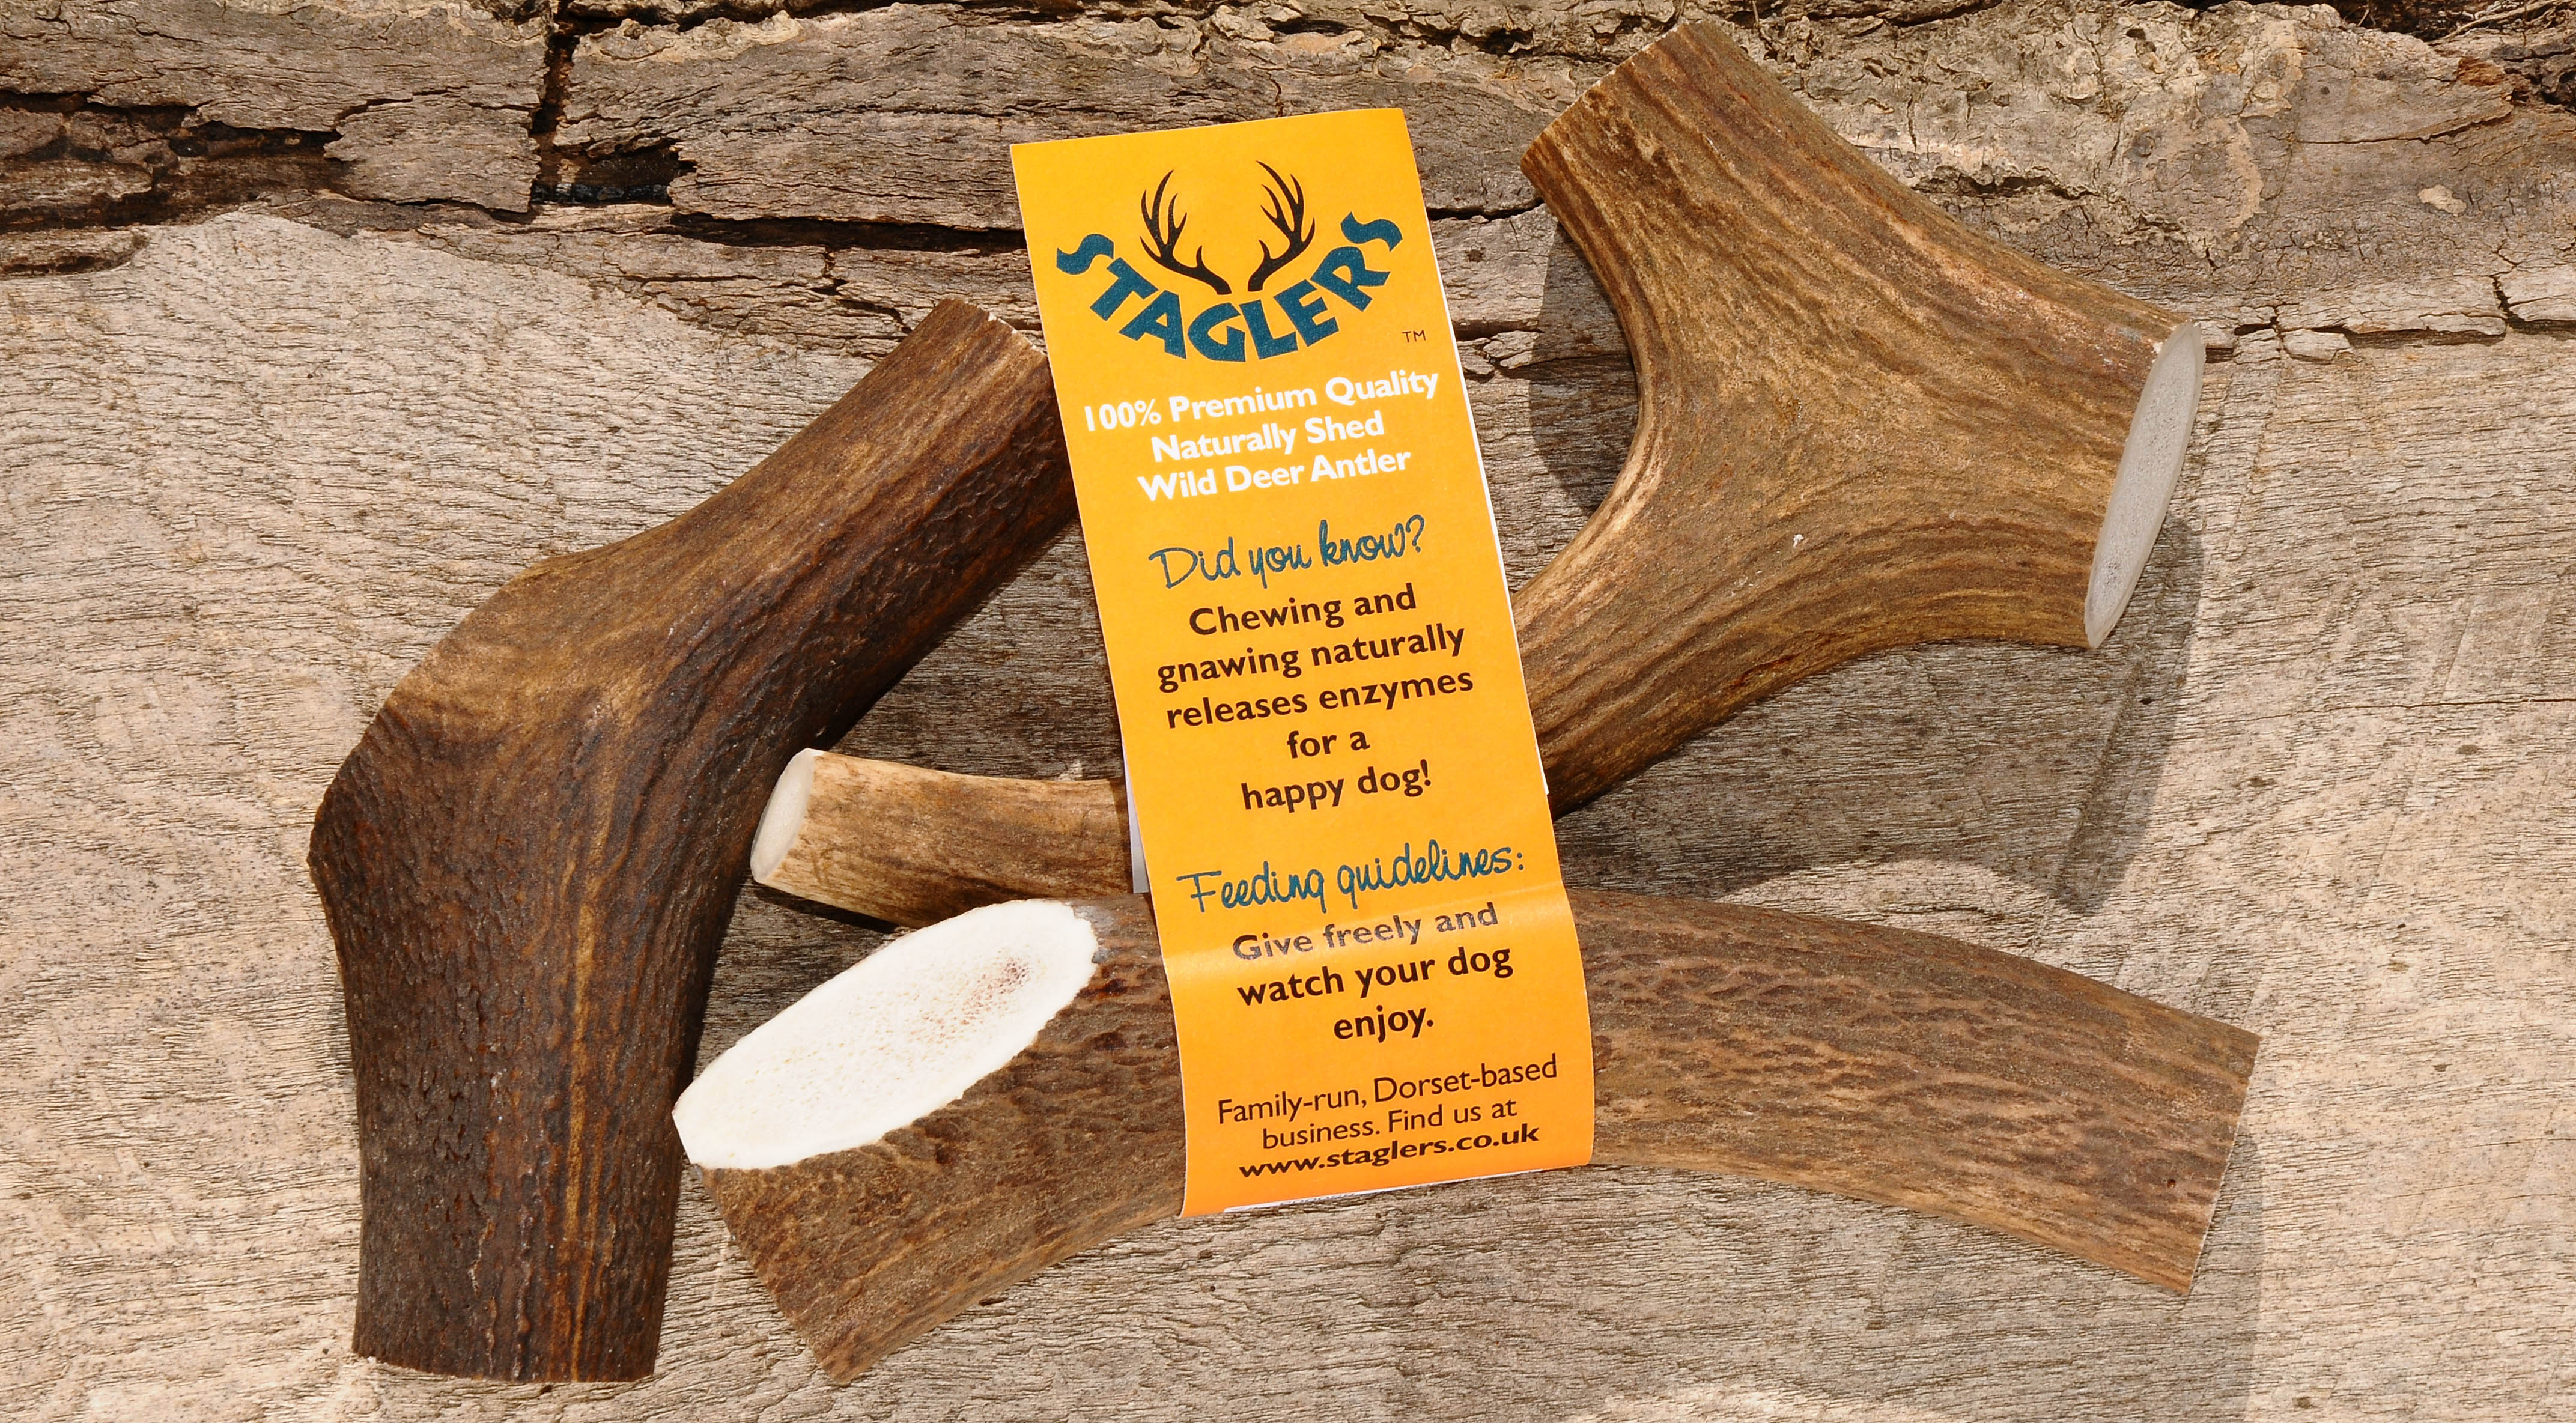 Staglers medium deer antler dog chews